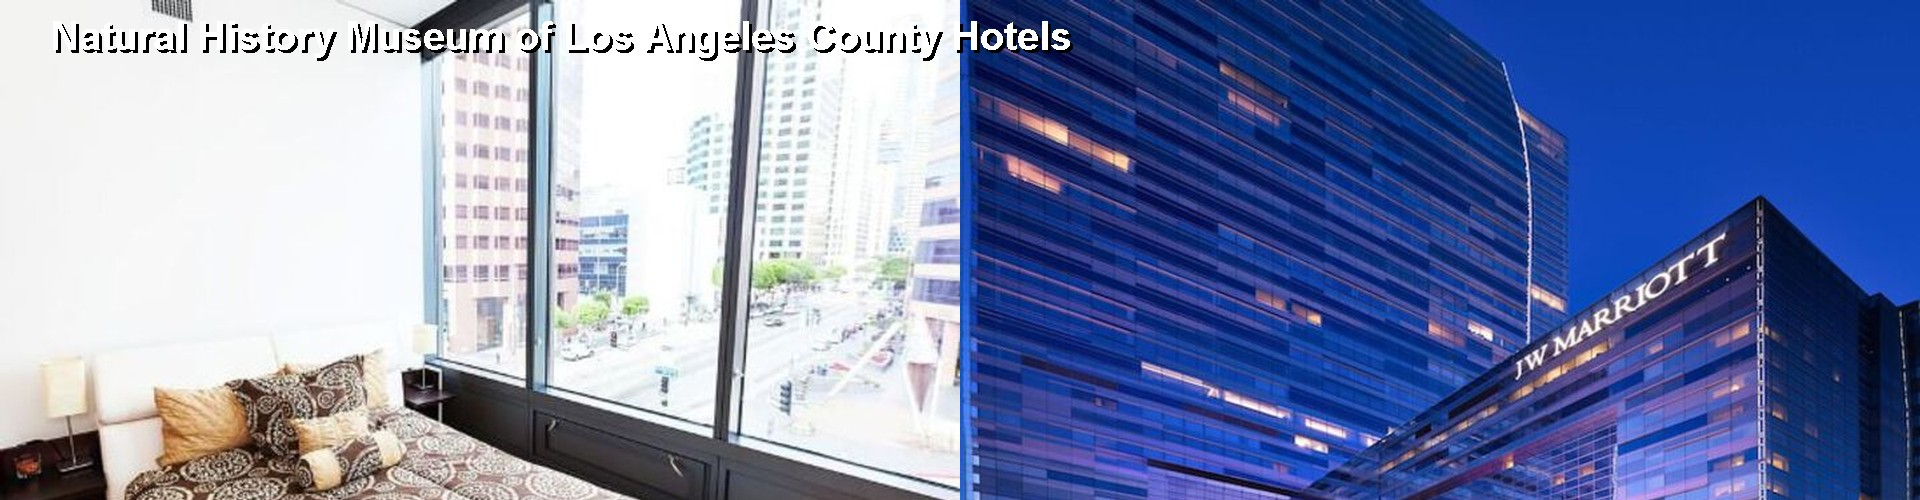 5 Best Hotels near Natural History Museum of Los Angeles County